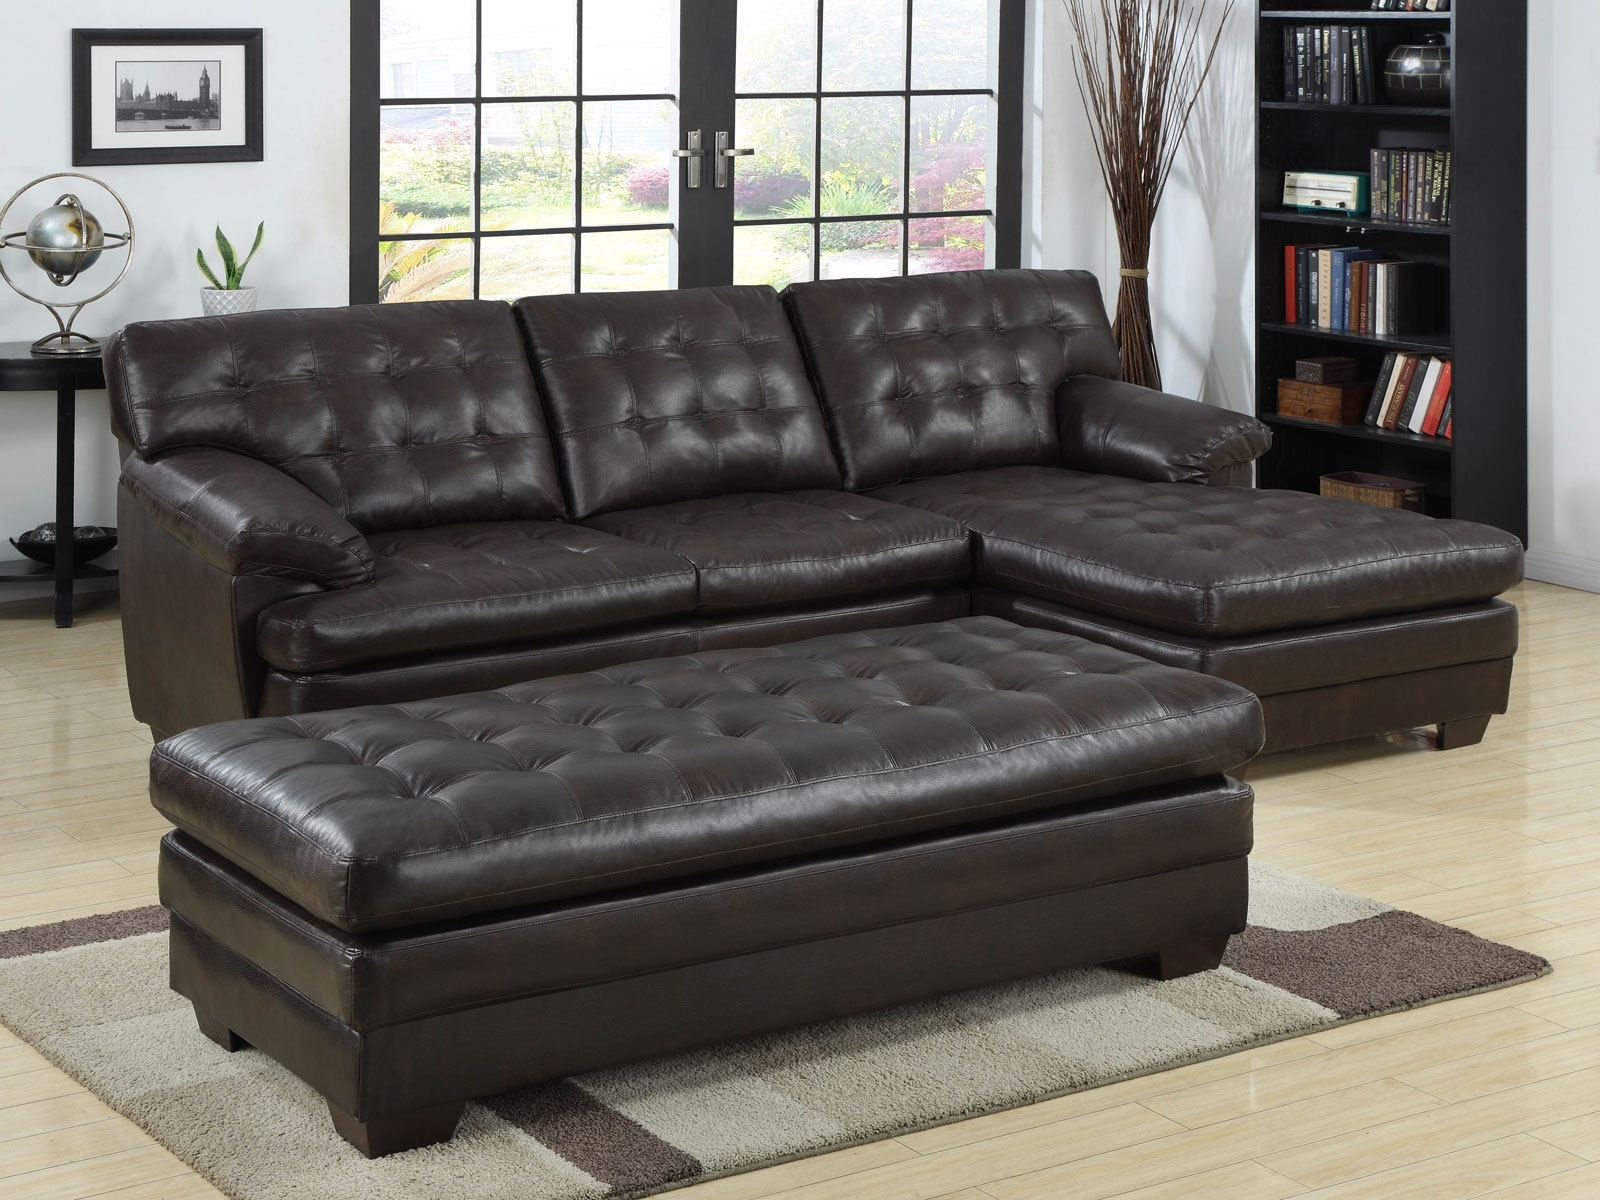 Cool Sectional Sofa With Chaise And Ottoman On Furniture Design regarding Sectional Sofas With Chaise and Ottoman (Image 4 of 15)